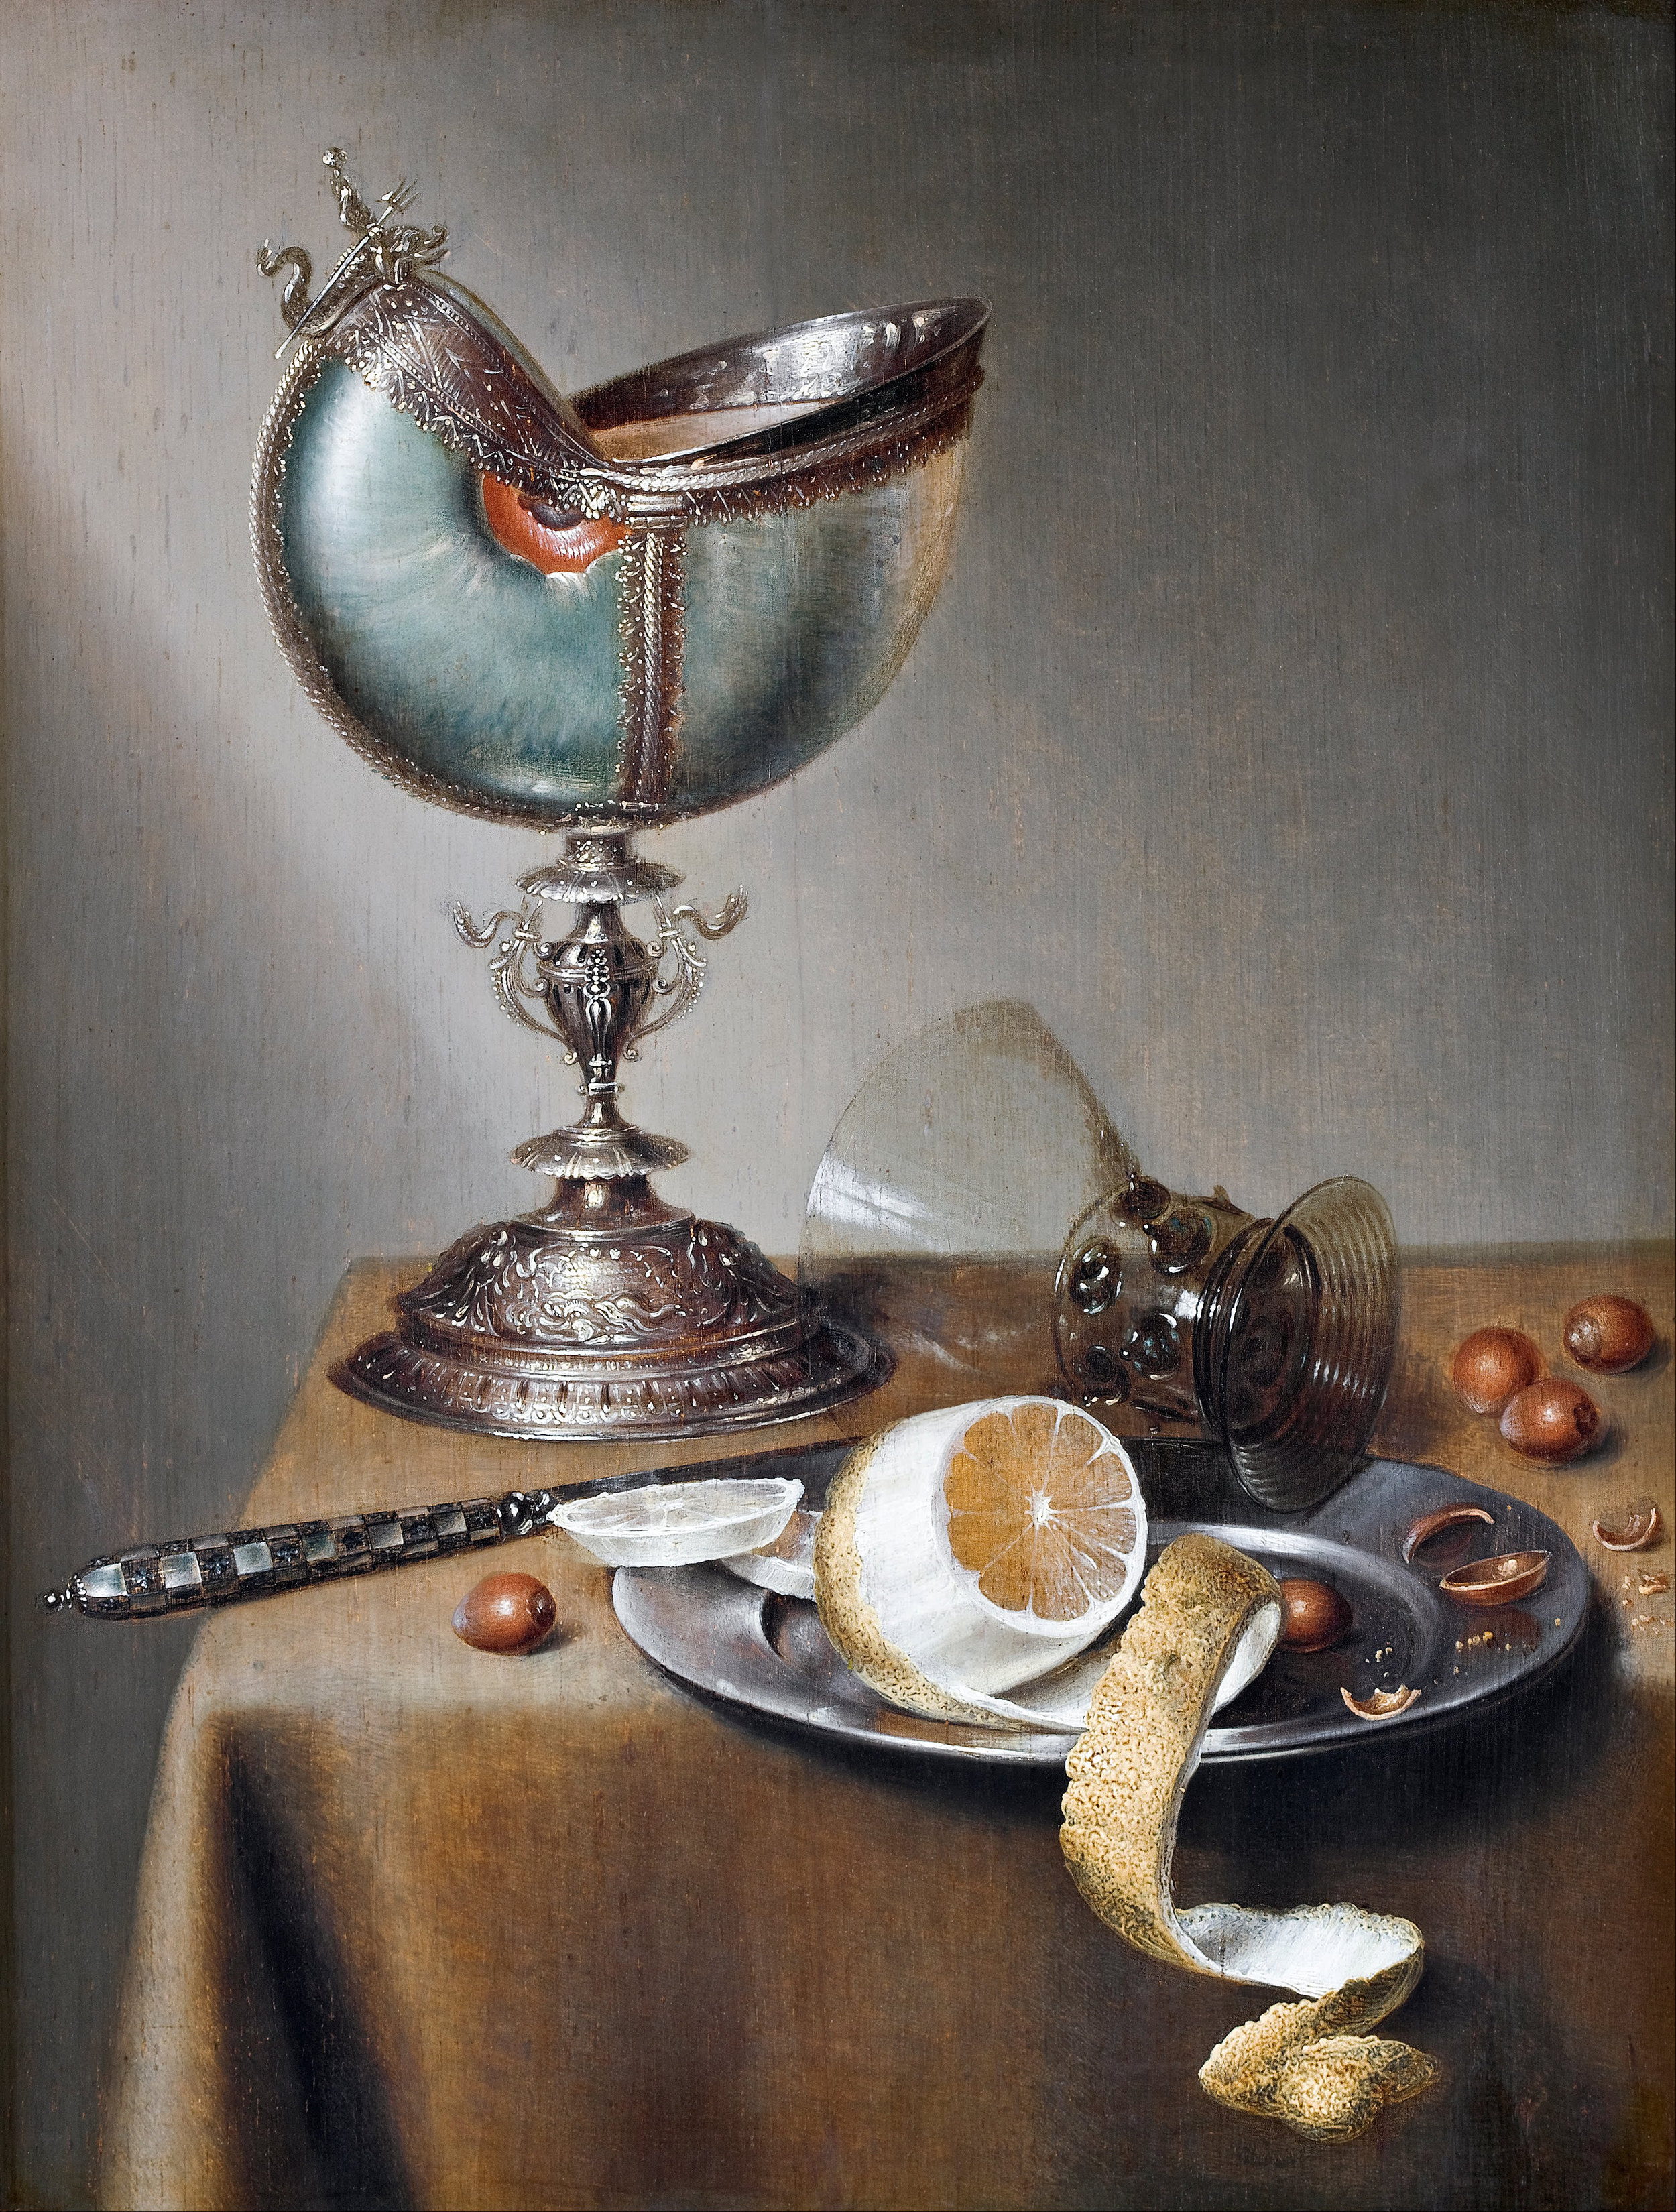 Marten_Boelema_de_Stomme_-_Still-Life_with_Nautilus_Cup_-_Google_Art_Project.jpg